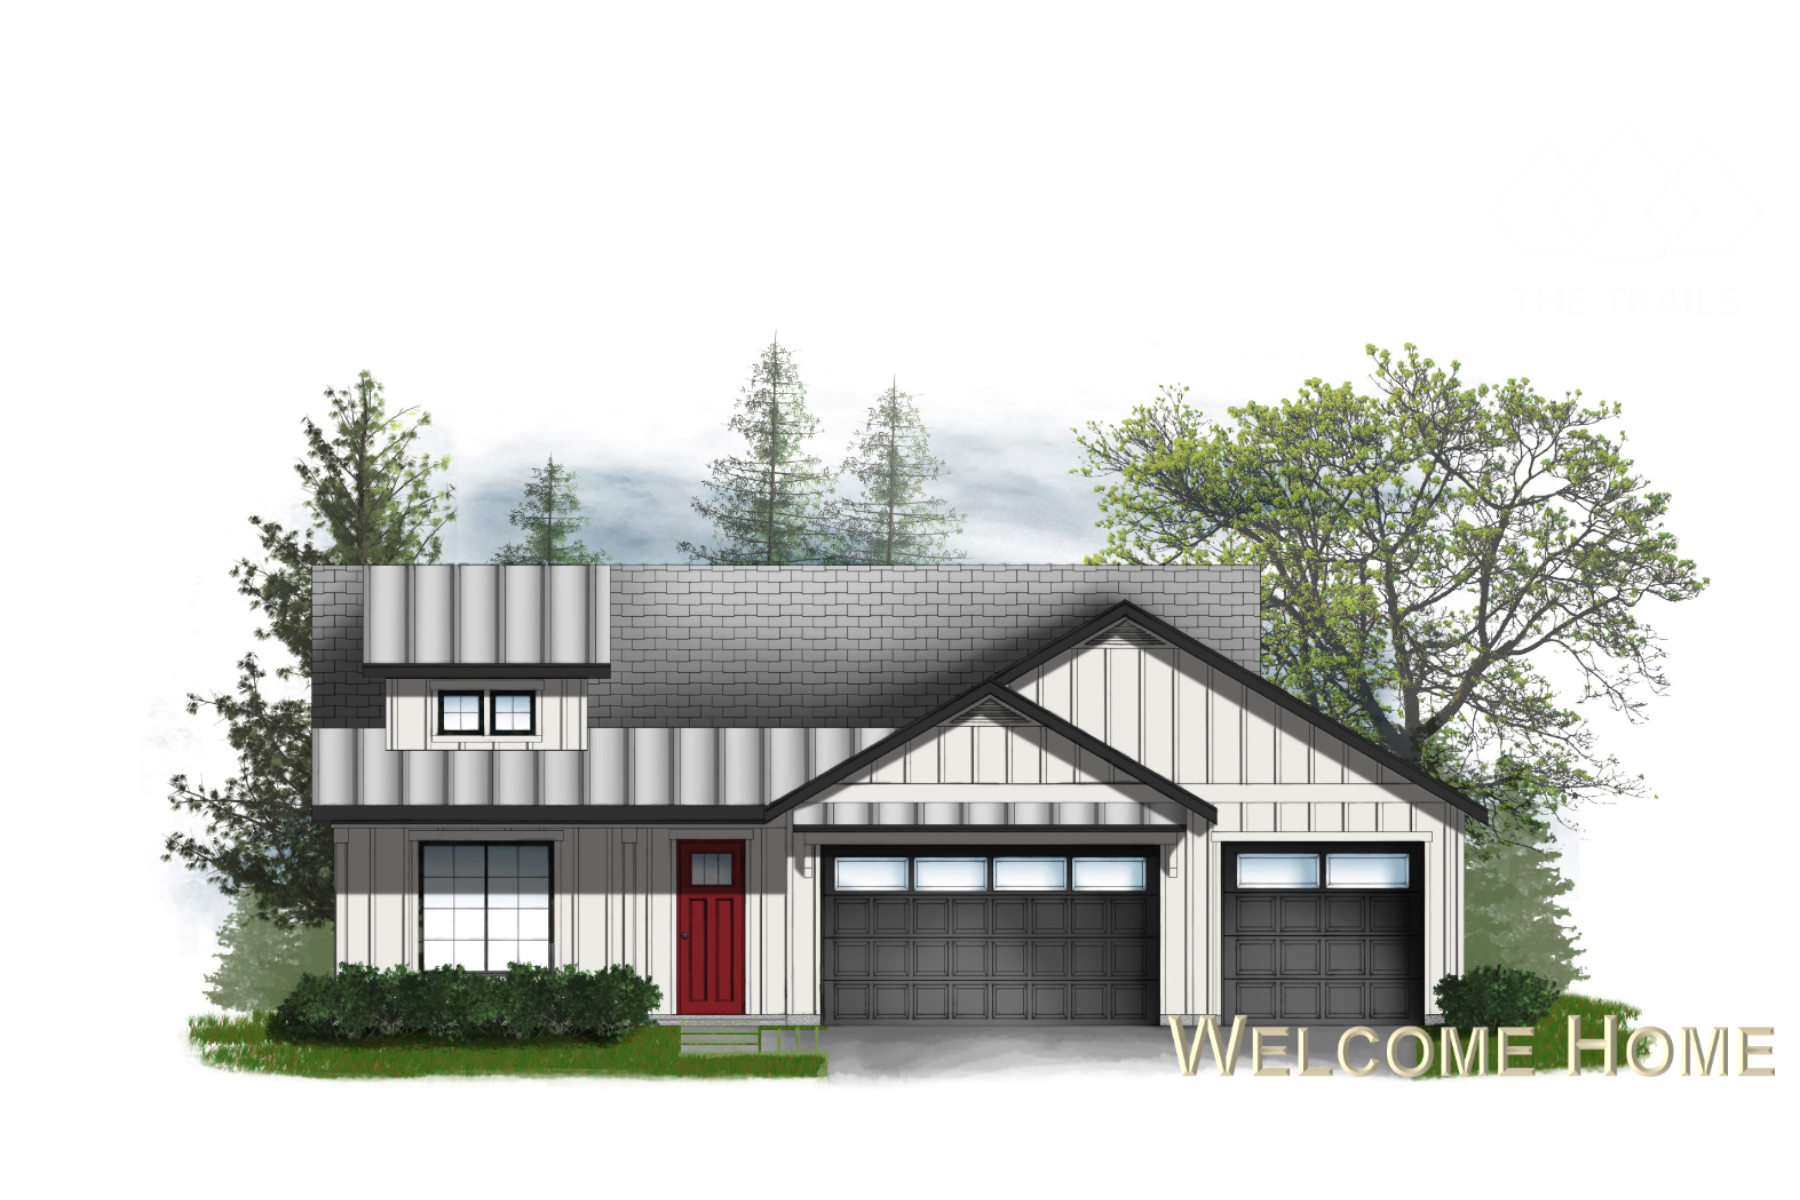 Single Family Homes のために 売買 アット The perfect lifestyle! 224 Ironwood Dr., Blanchard, アイダホ 83804 アメリカ